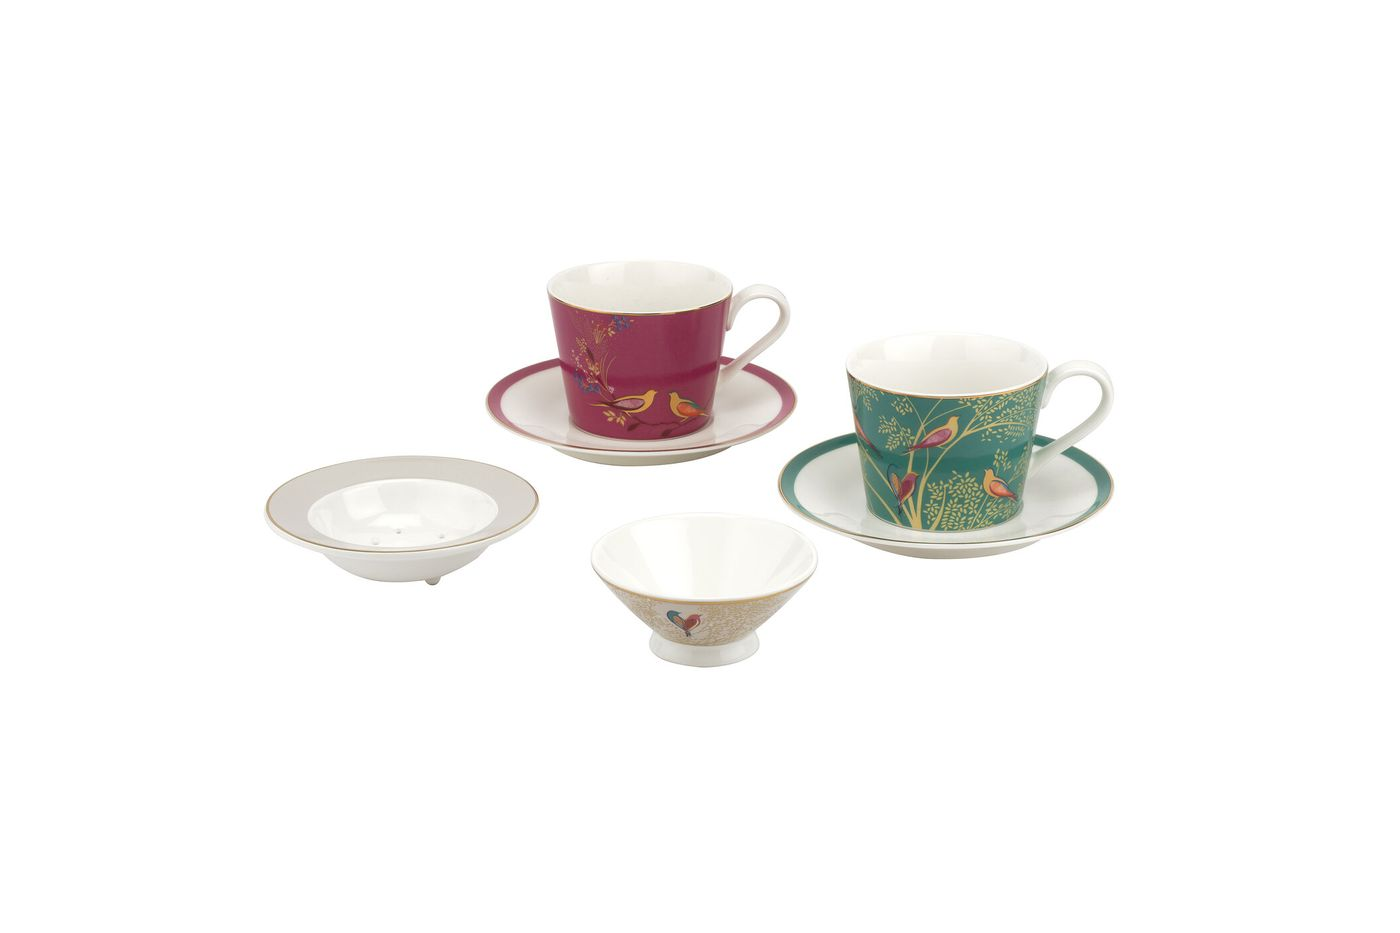 Sara Miller London for Portmeirion Chelsea Collection Tea For Two thumb 1